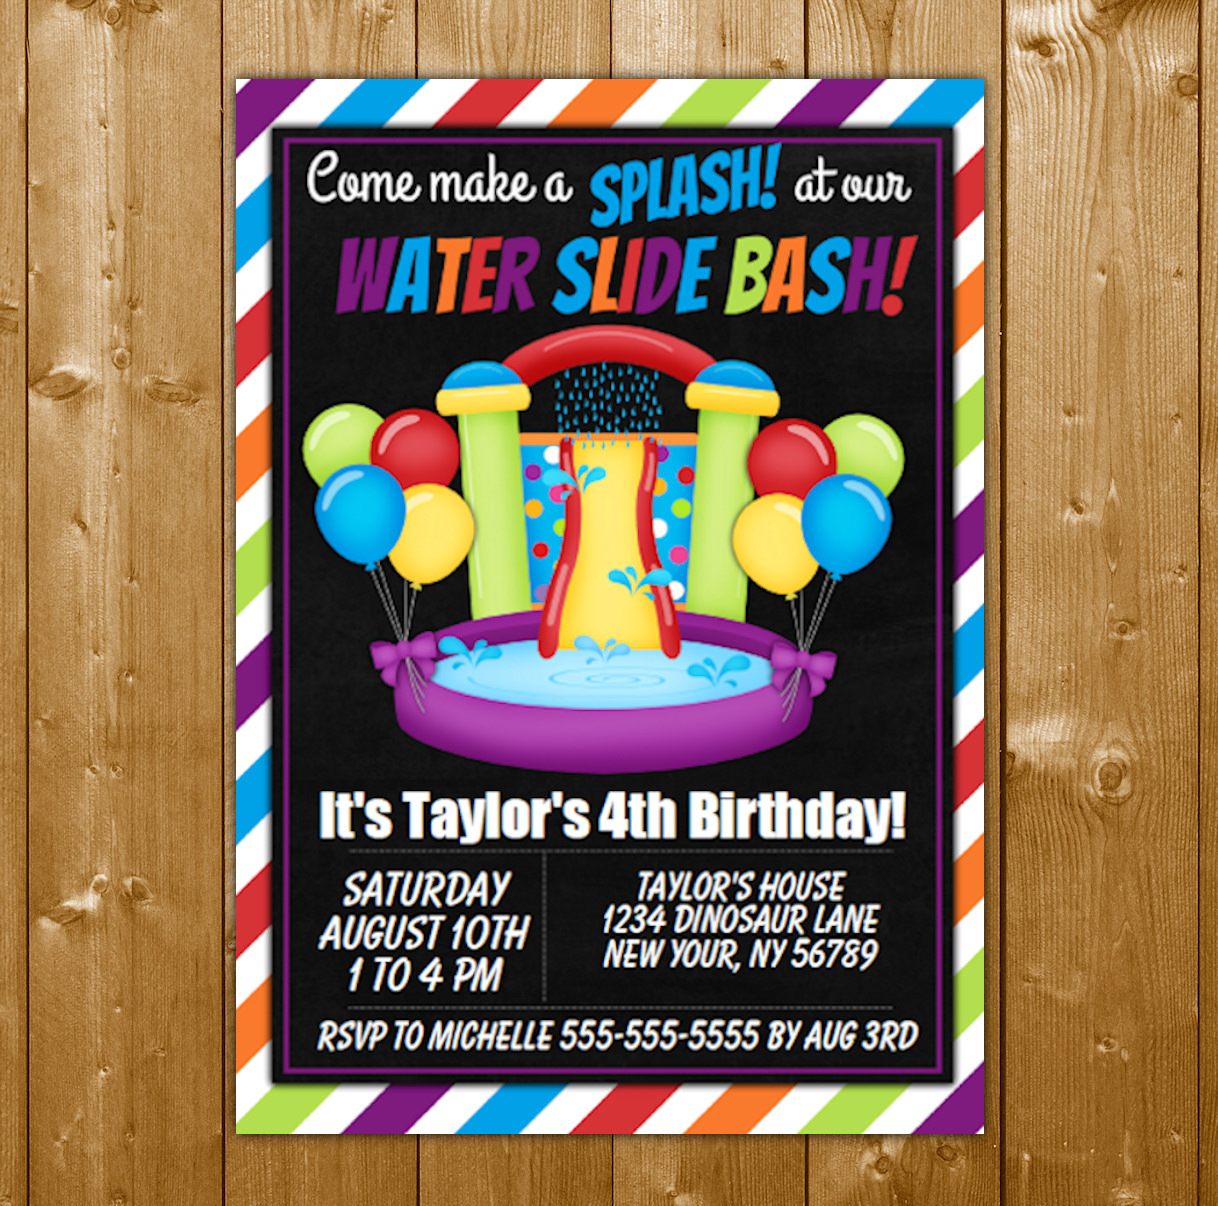 Water Slide Birthday Party Invitation Digital Download